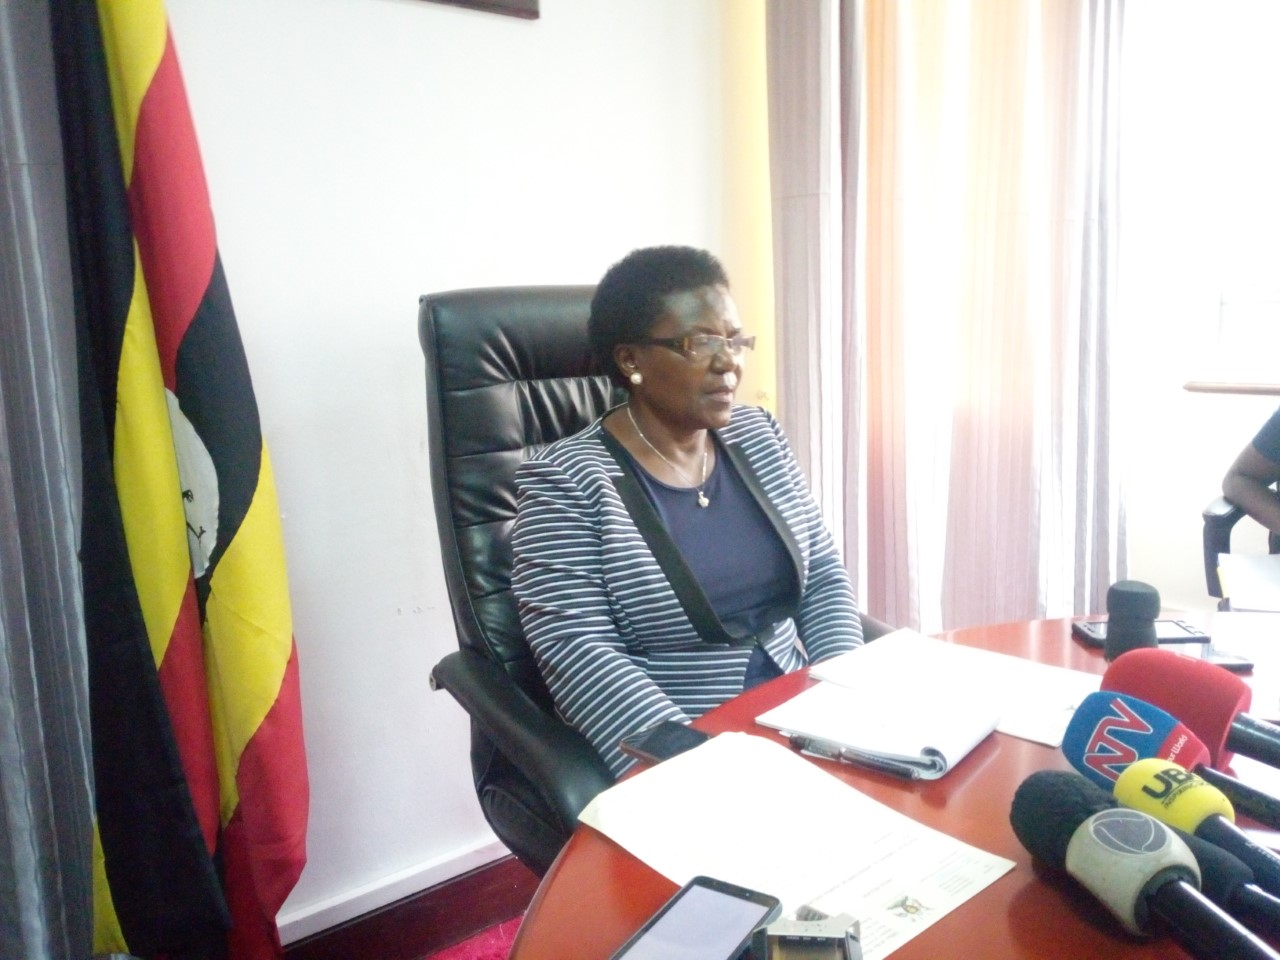 The Minister of Works and Transport, Hon. Monica Azuba Ntege addressing the media about the status of the National Airline (Uganda Airlines) at the Ministry of Works and Transport offices. (PHOTO/Tracy Nayiga)